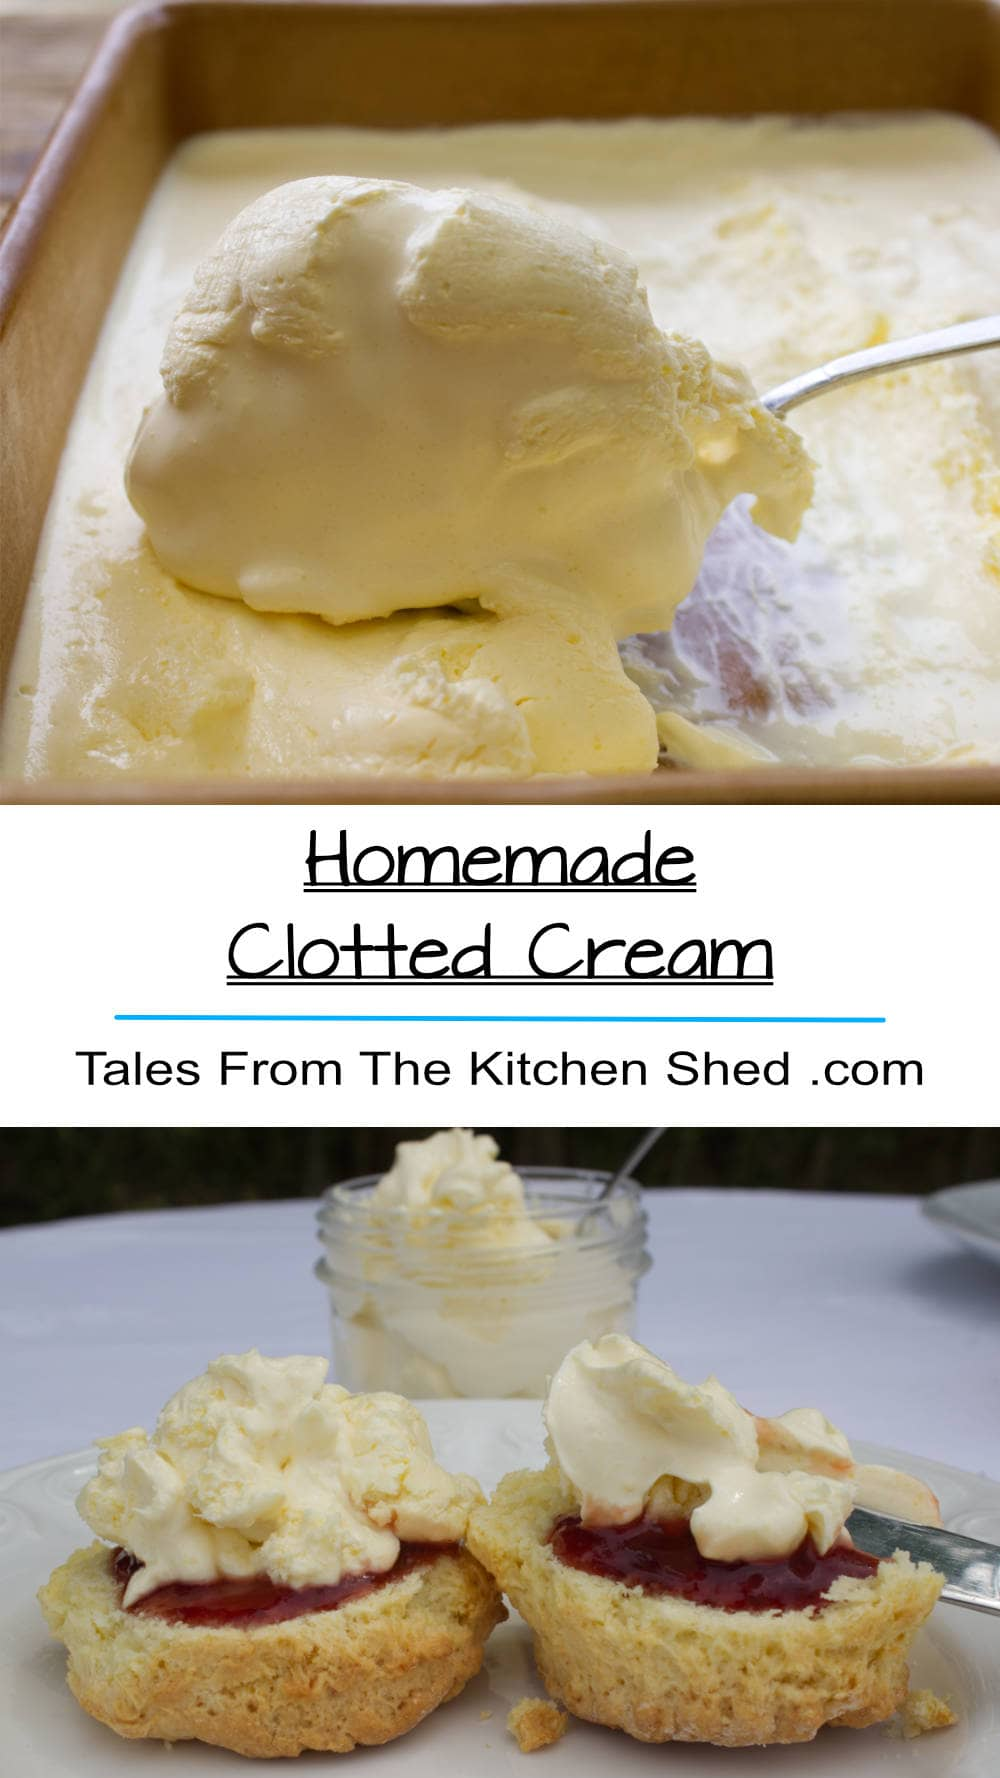 Homemade Clotted Cream is quick & easy to make. Deliciously decadent served with warm scones & homemade jam for a perfect cream tea.